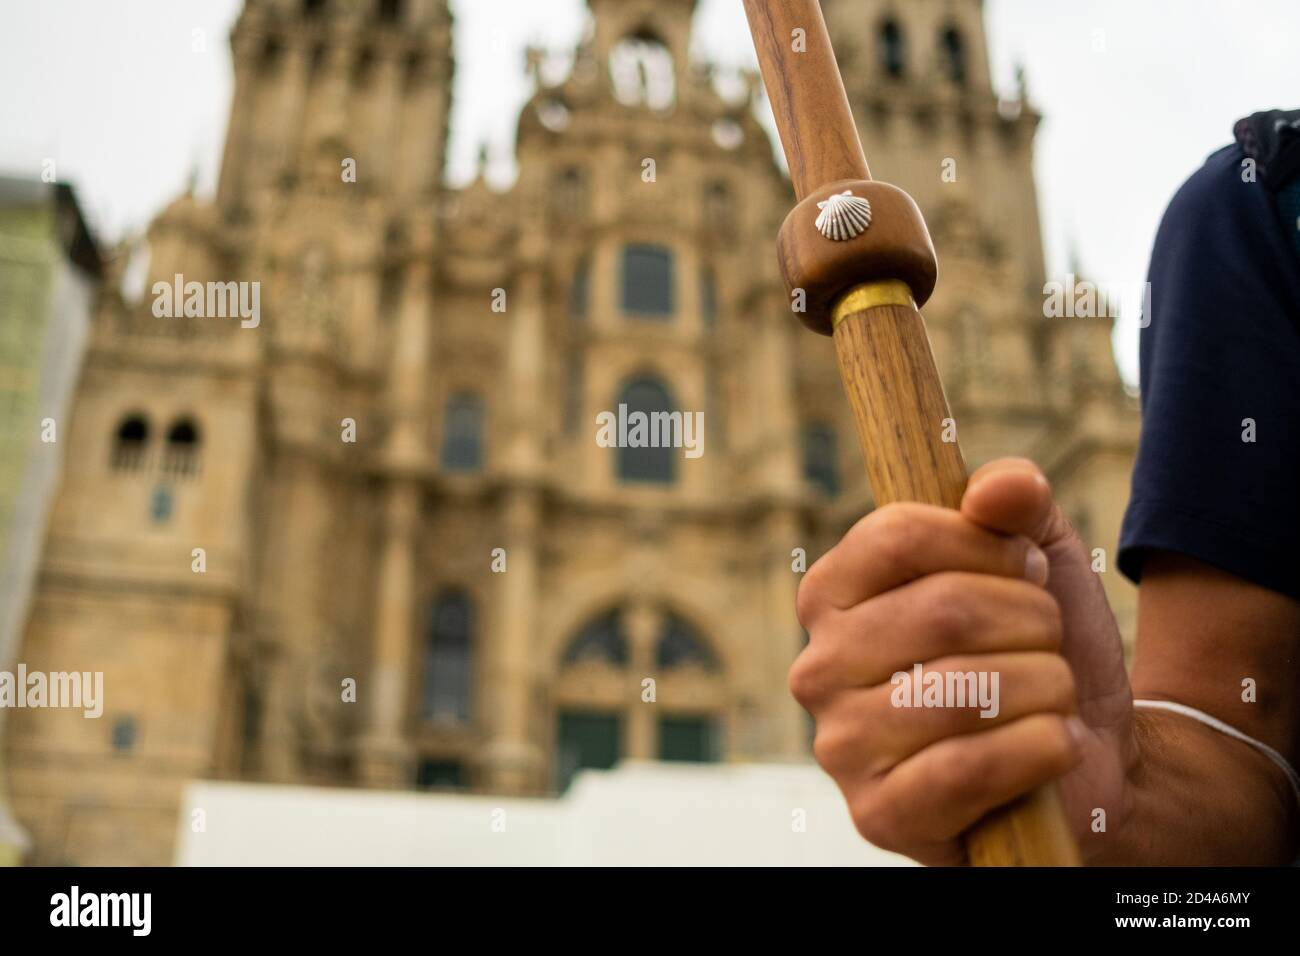 closeup of pilgrim hand holding walking stick with scallop shell, symbol of the camino de santiago pilgrimage, in front of the santiago cathedral Stock Photo